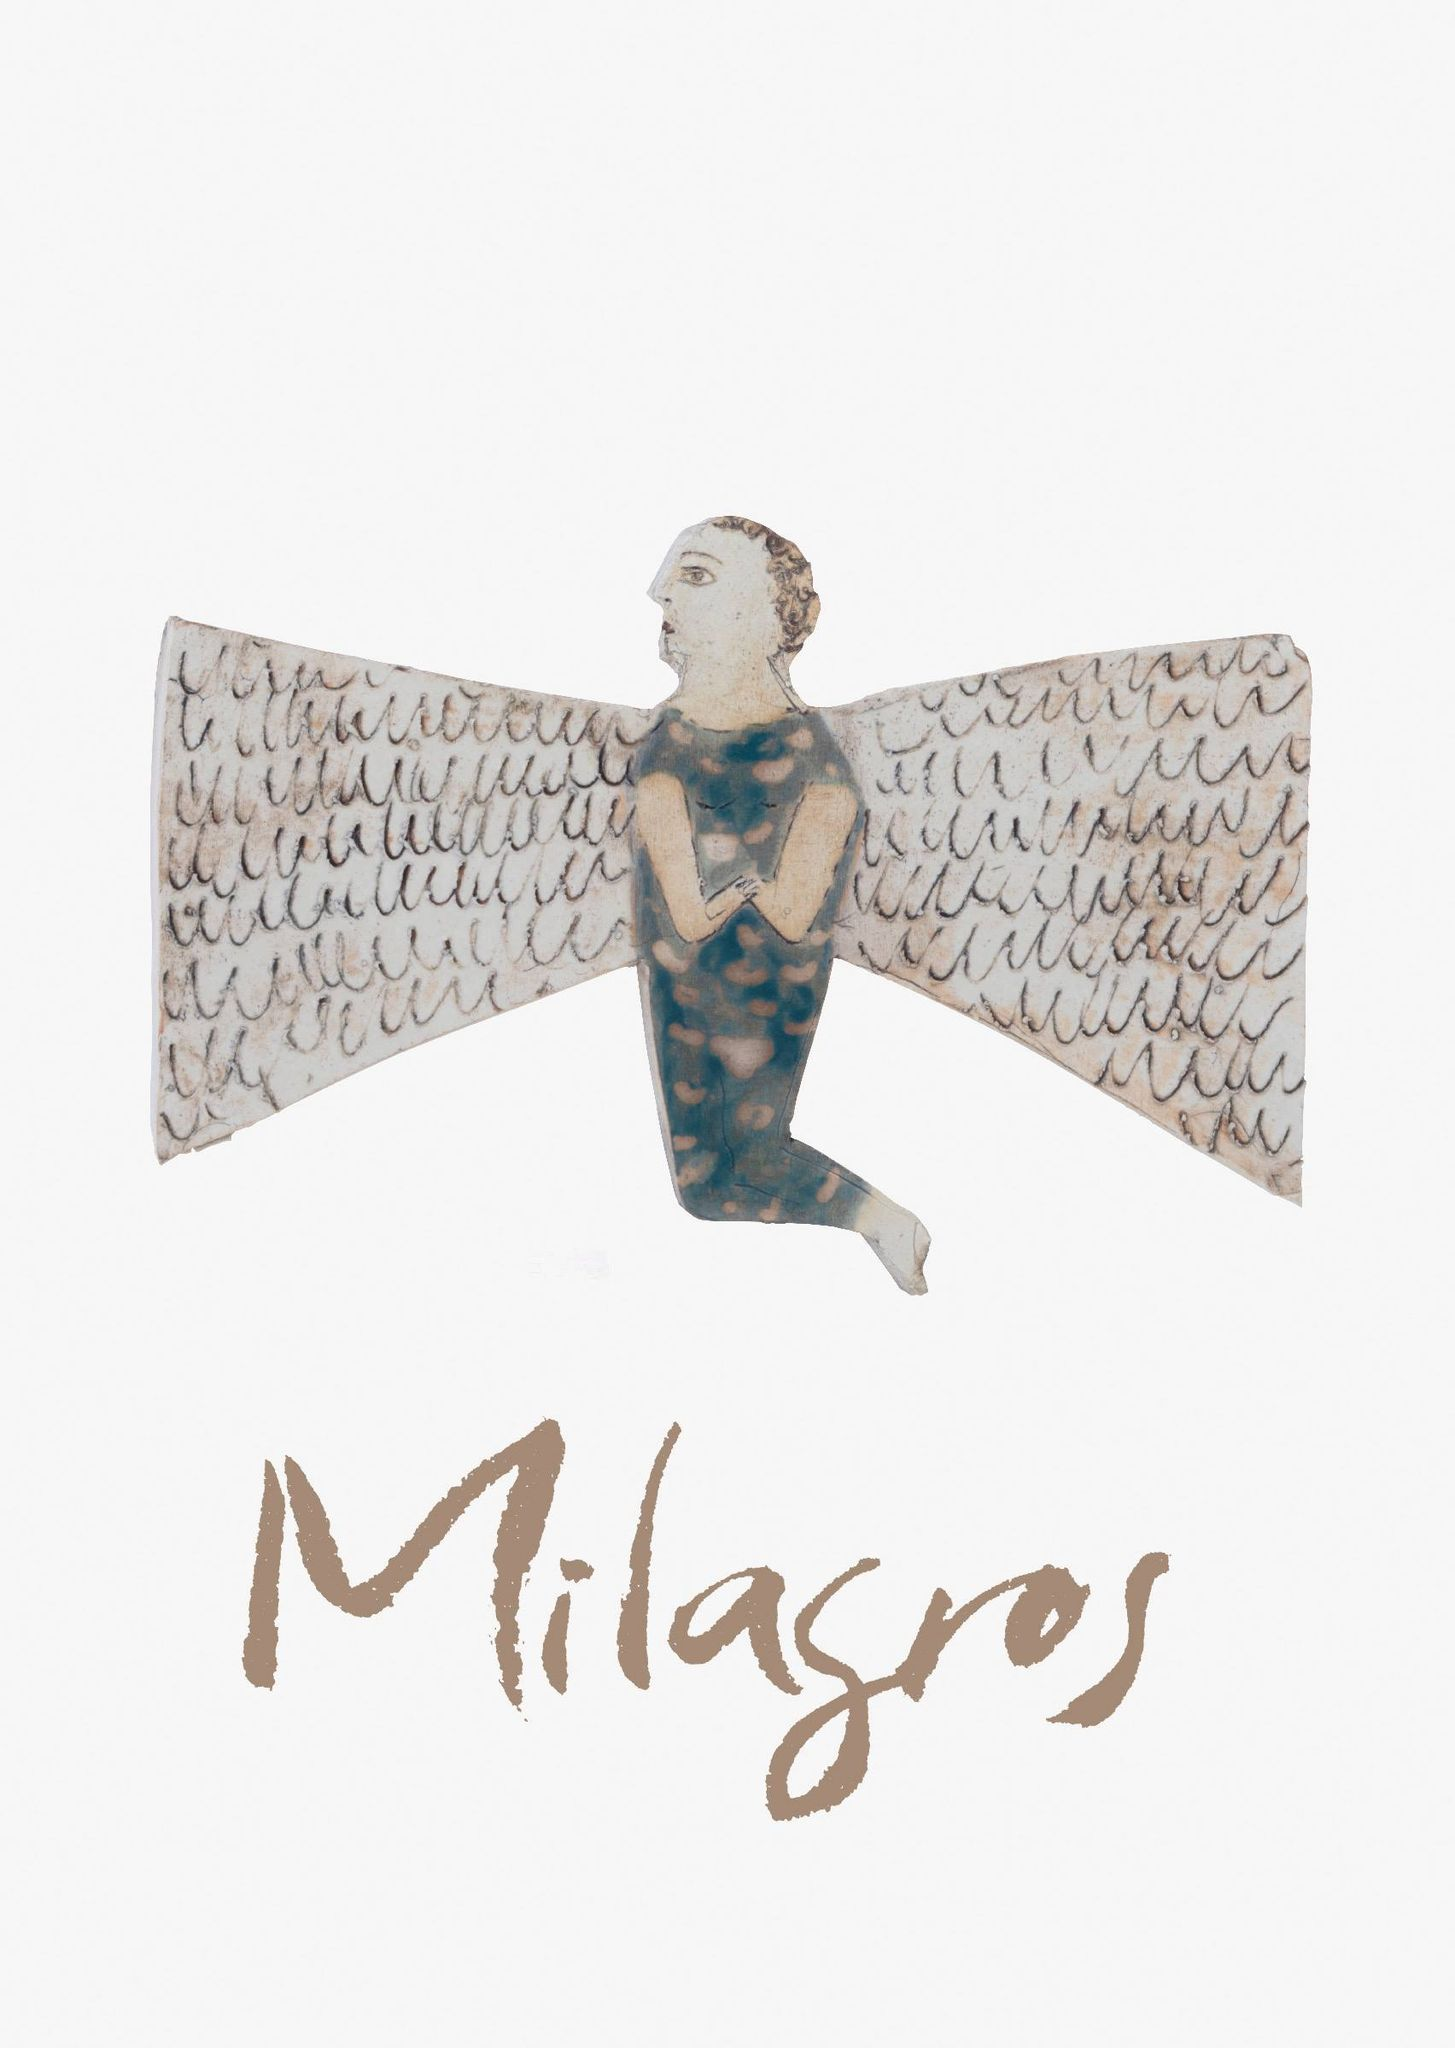 企画展《TO SEE Archive:24》 <br>Yuko Kan Solo Exhibition<br>『milagros』